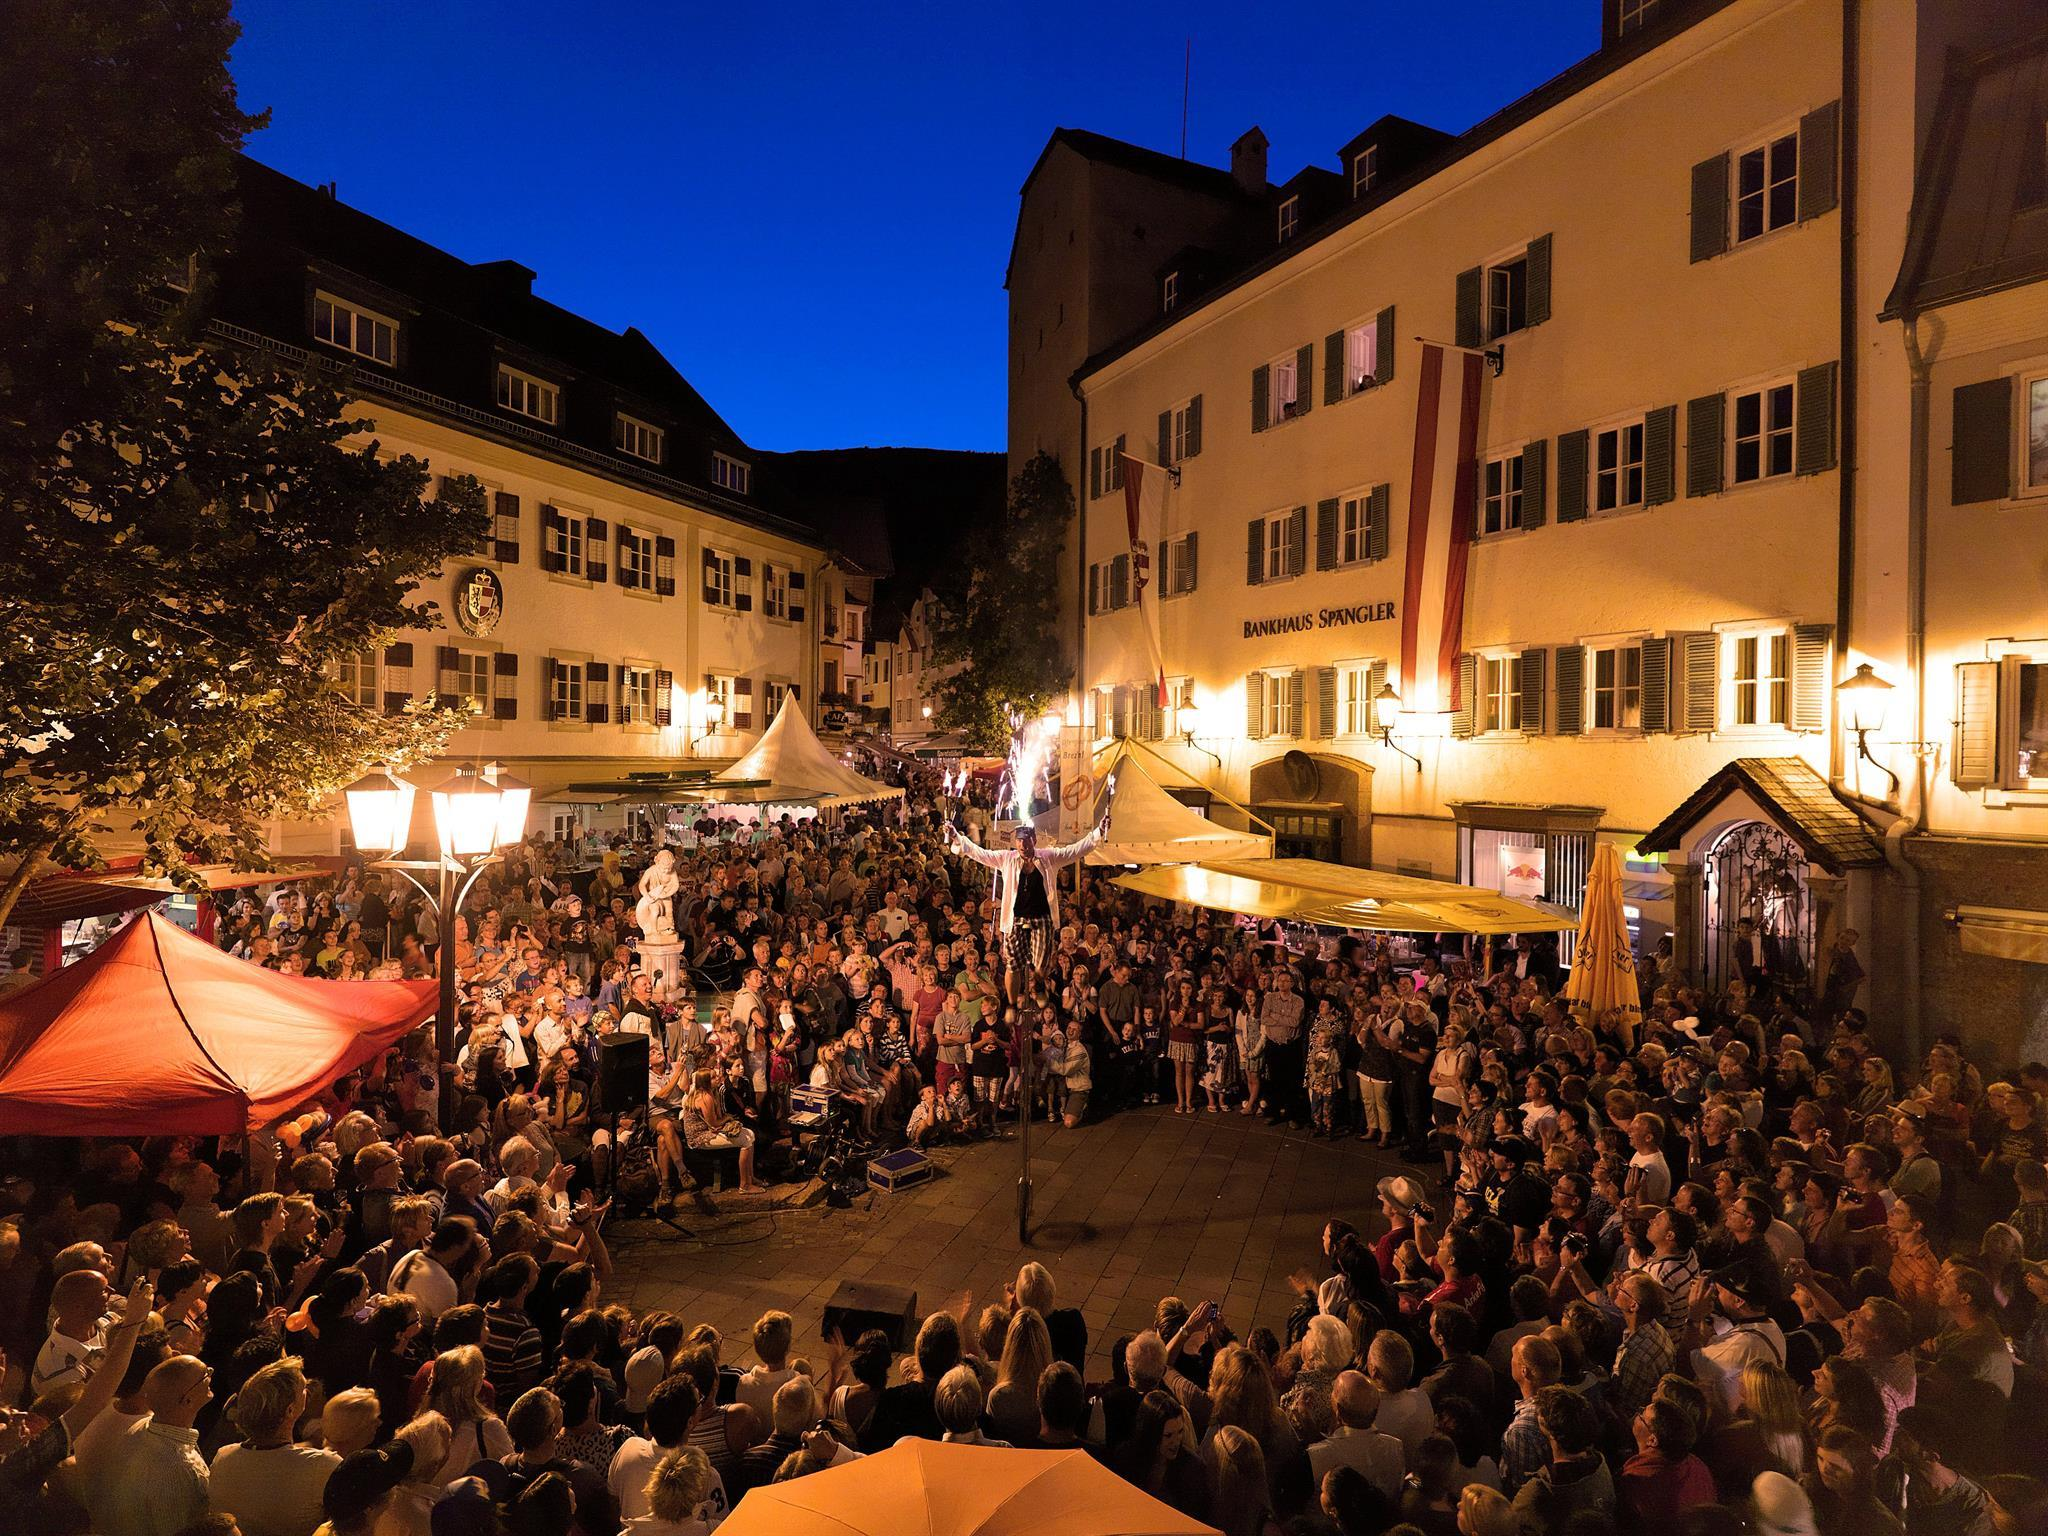 Zell SummerNightFestival - 29/07/2020, from 7:00 PM